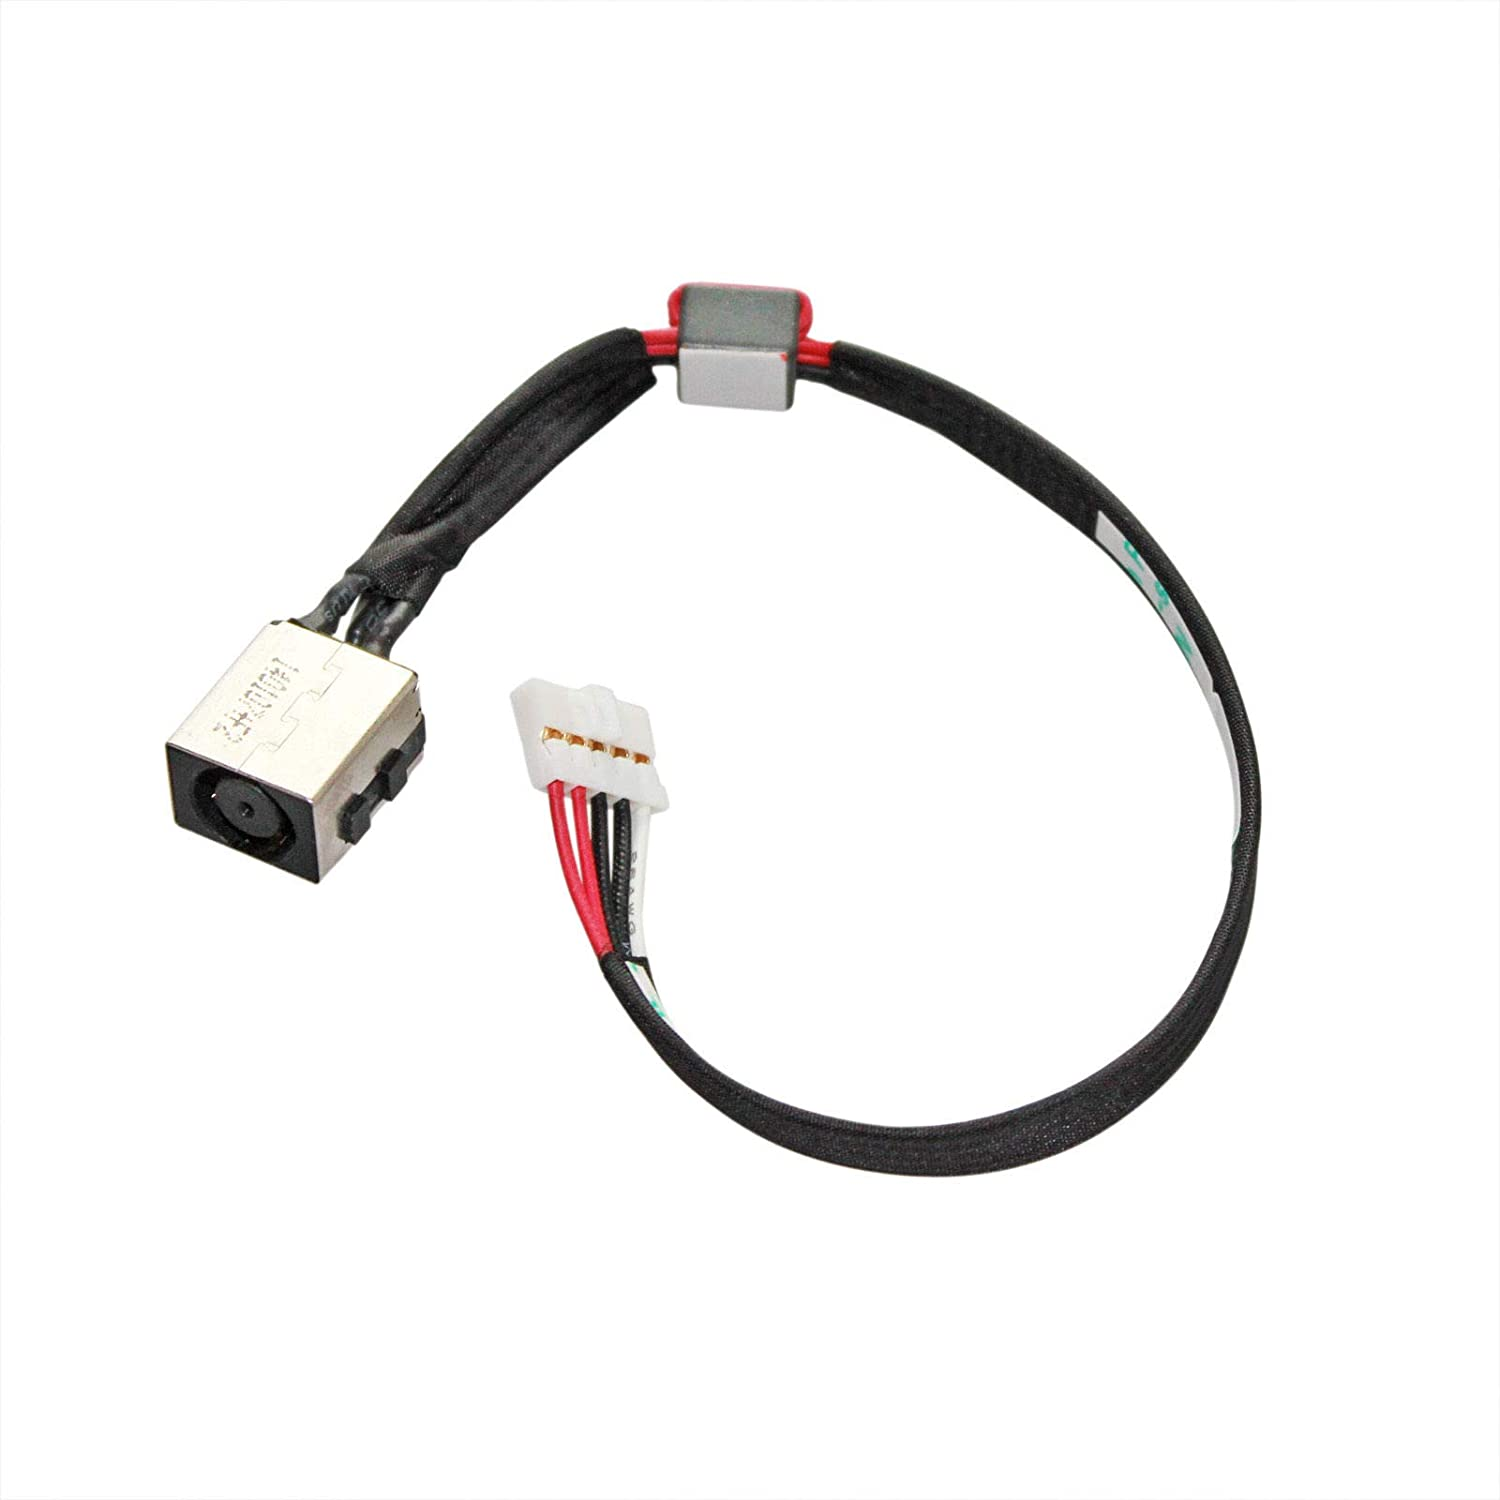 DBParts DC Power Jack Cable For Dell Inspiron 15-5540, 15-5542, 15-5545, 15-5547, 15-5548, Inspiron 5540 5542 5545 5547 5548, P/N: M03W3 0M03W3 P39F GT074